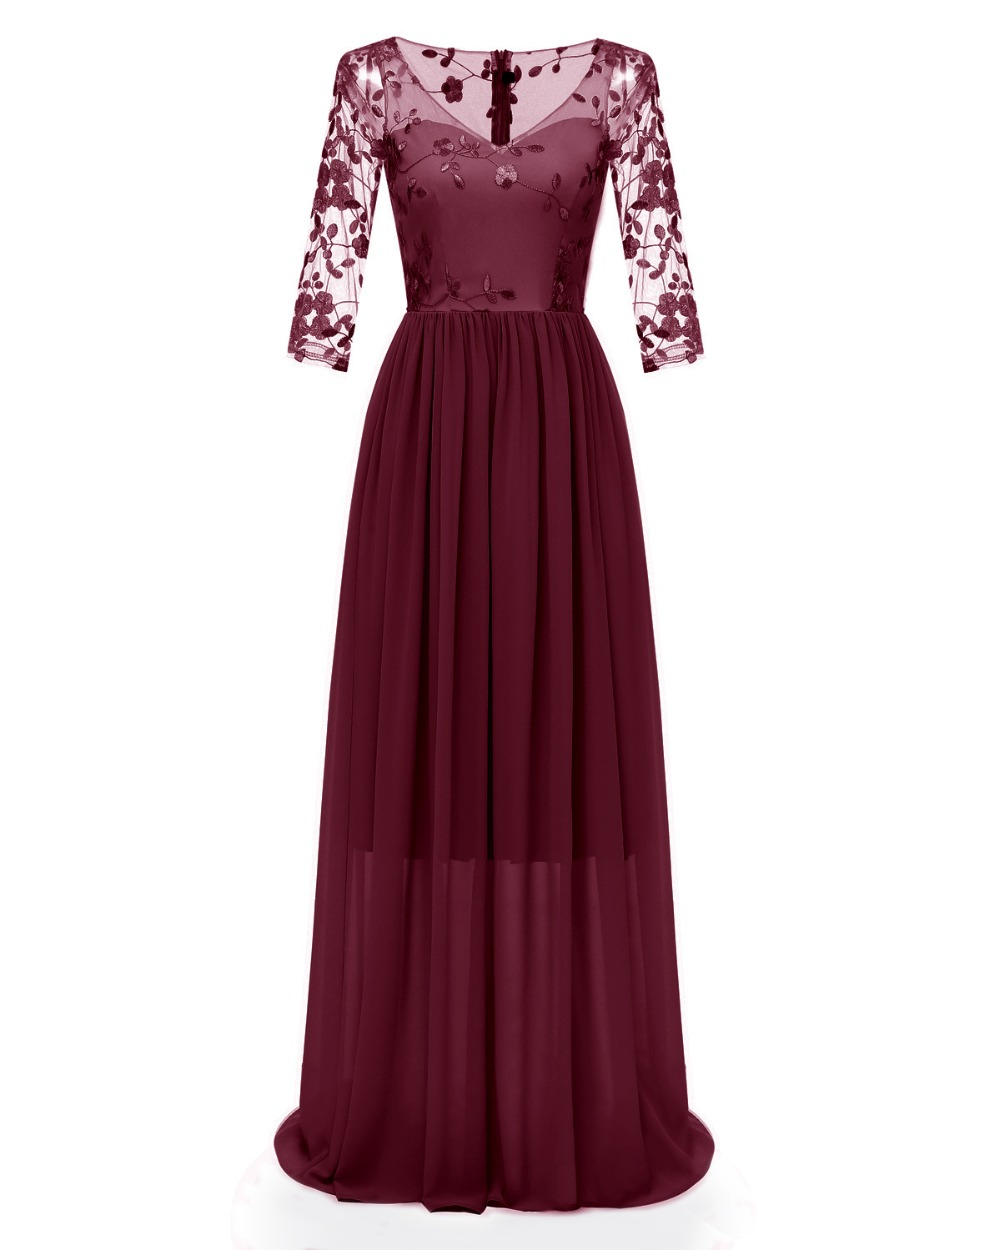 Women Floral Embroidery Lace Illusion Long Dress 3/4 Sleeve Sheer Back Maxi Dress Floor Length Formal Party Dress 3